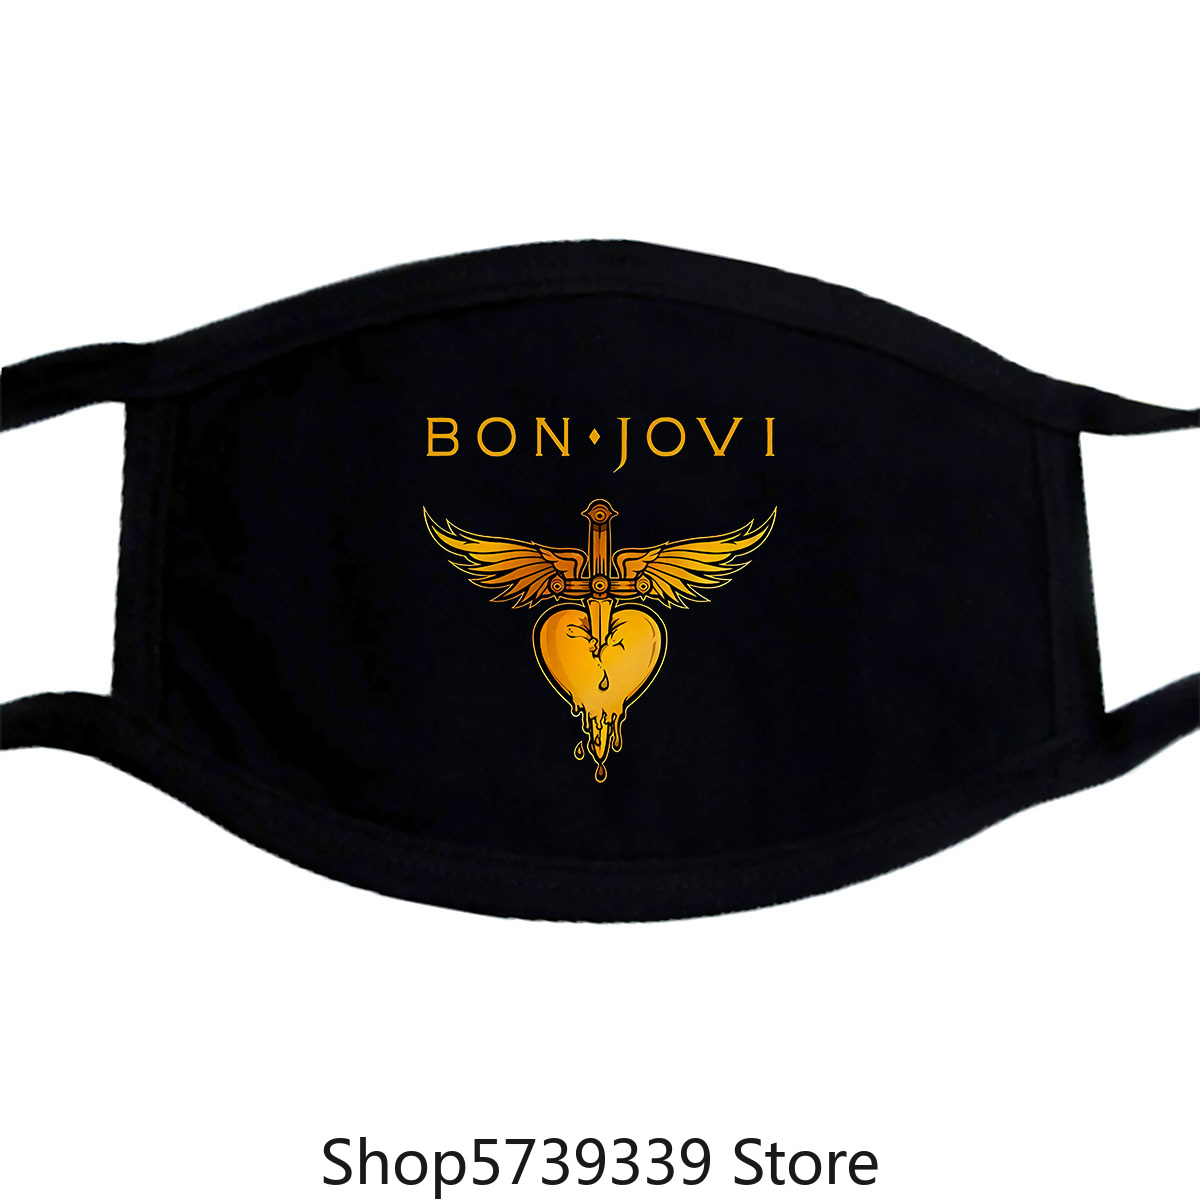 Bon Jovi Heart Graphic Mask, Cotton Rock Tee, Mens Washable Reusable Mask